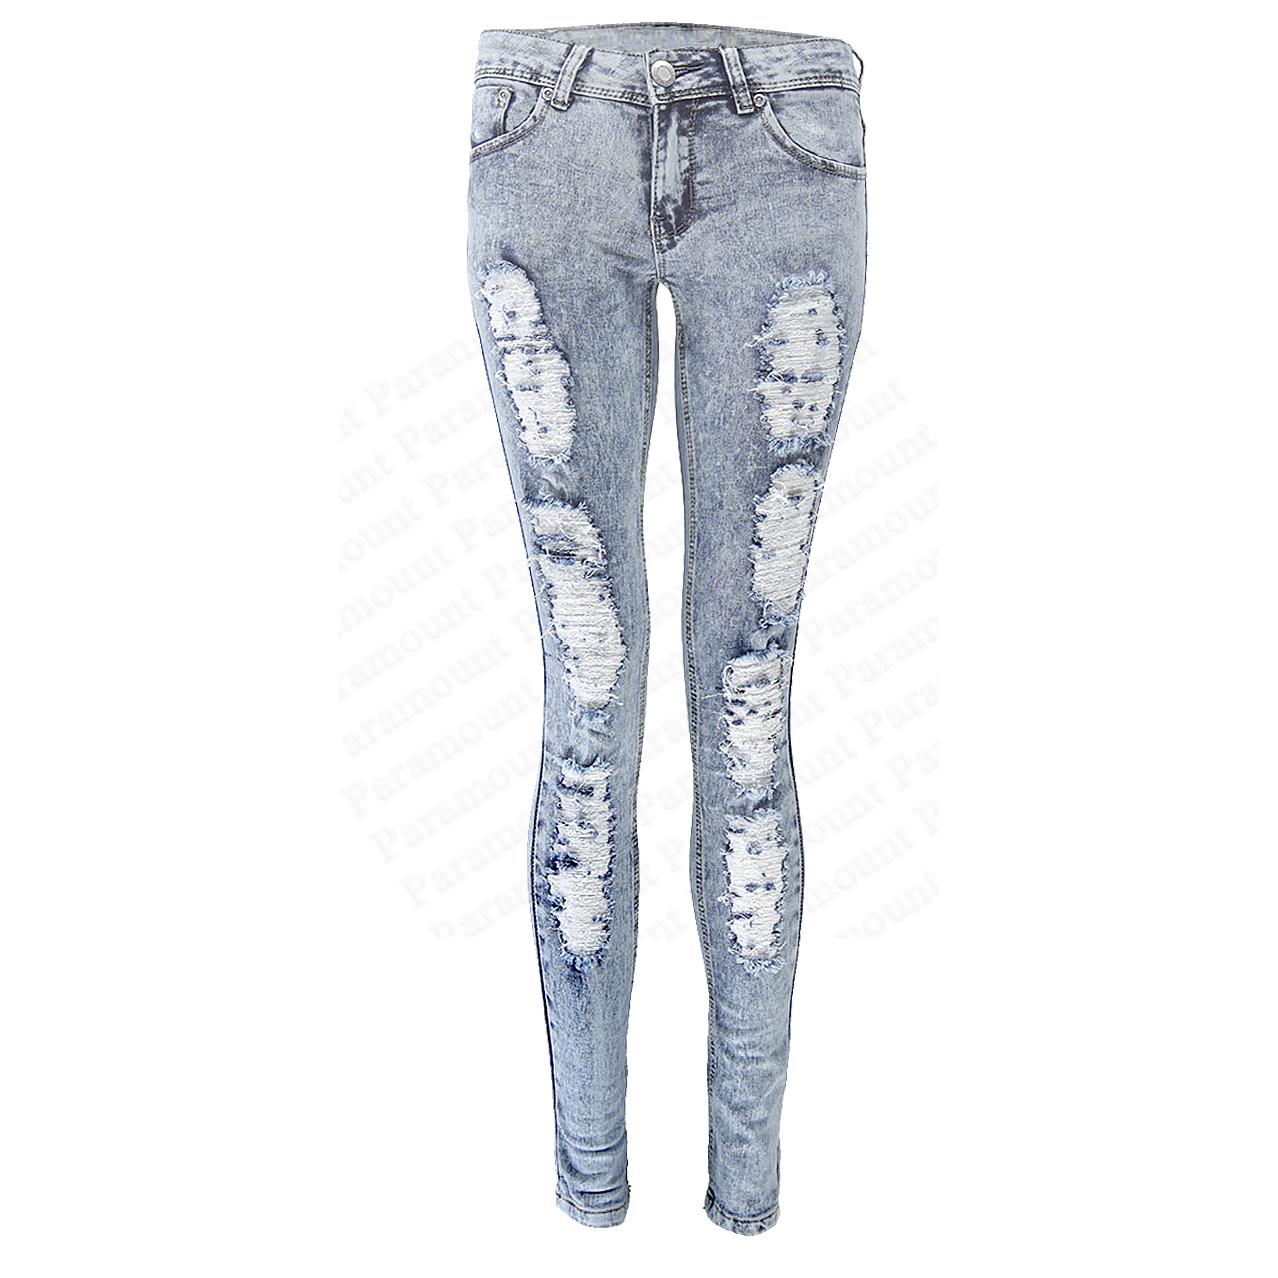 acid bleach wash ripped distressed leg stretch skinny